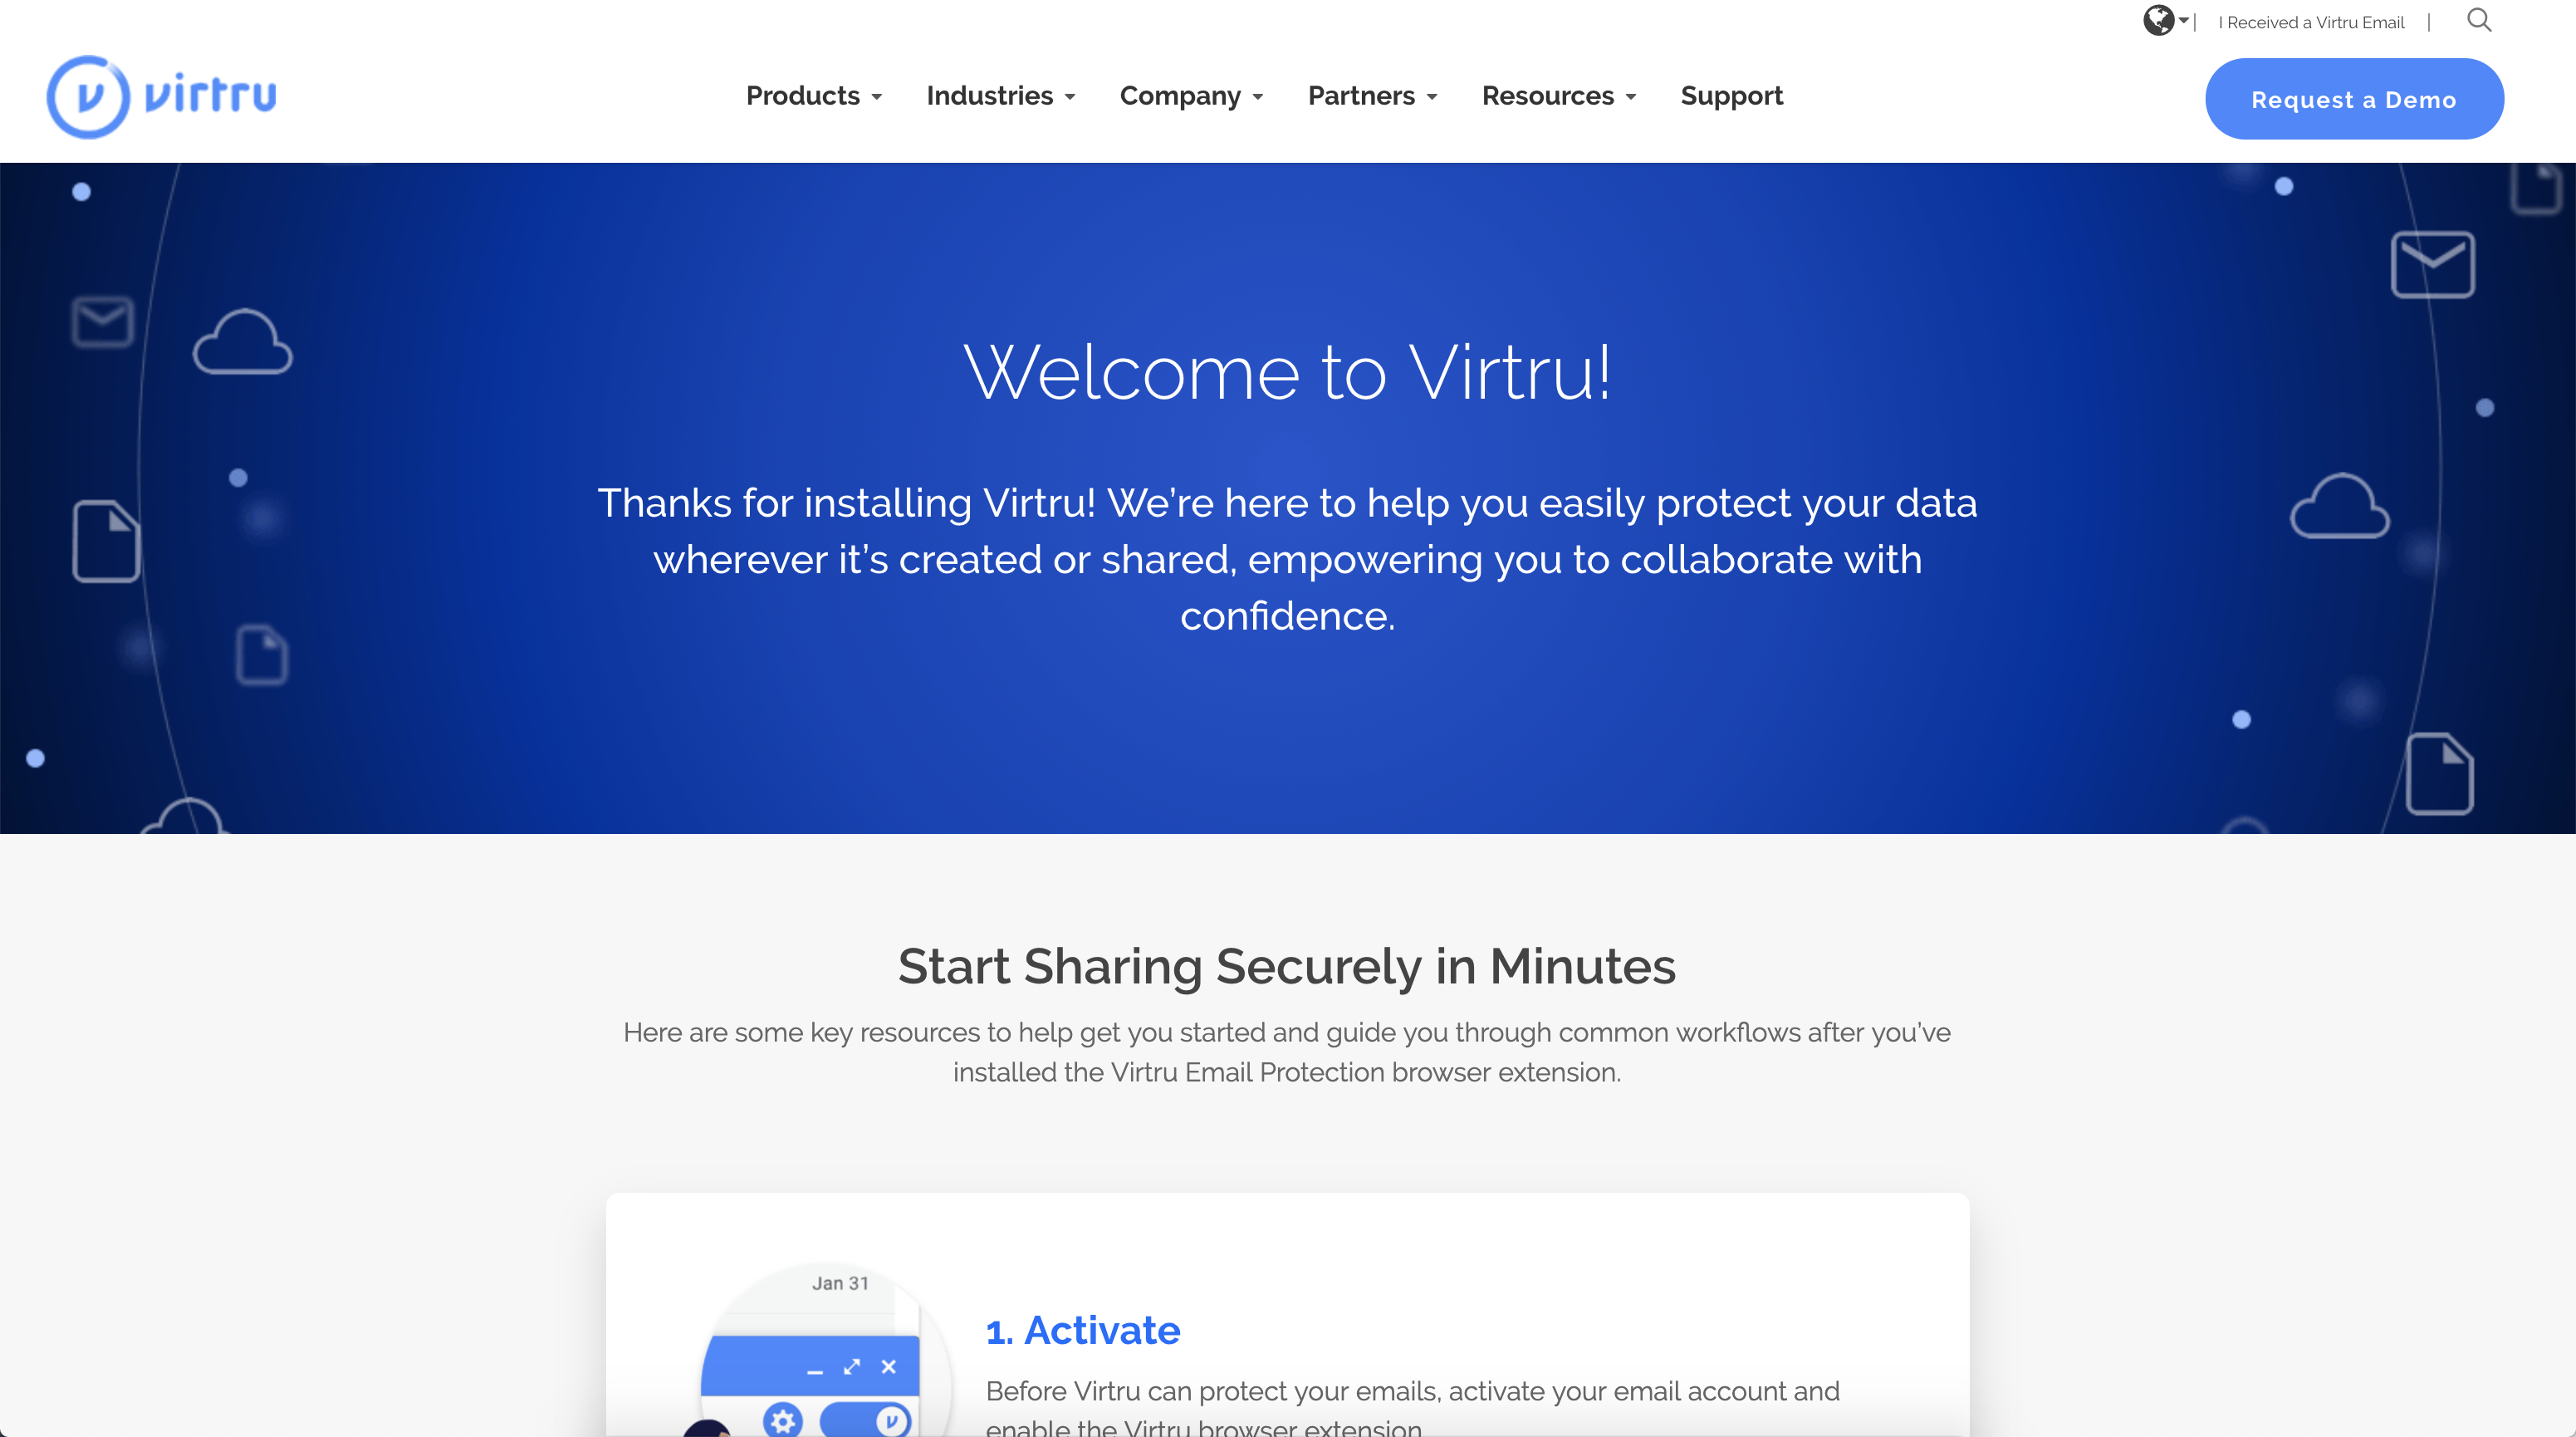 Virtru website welcome page